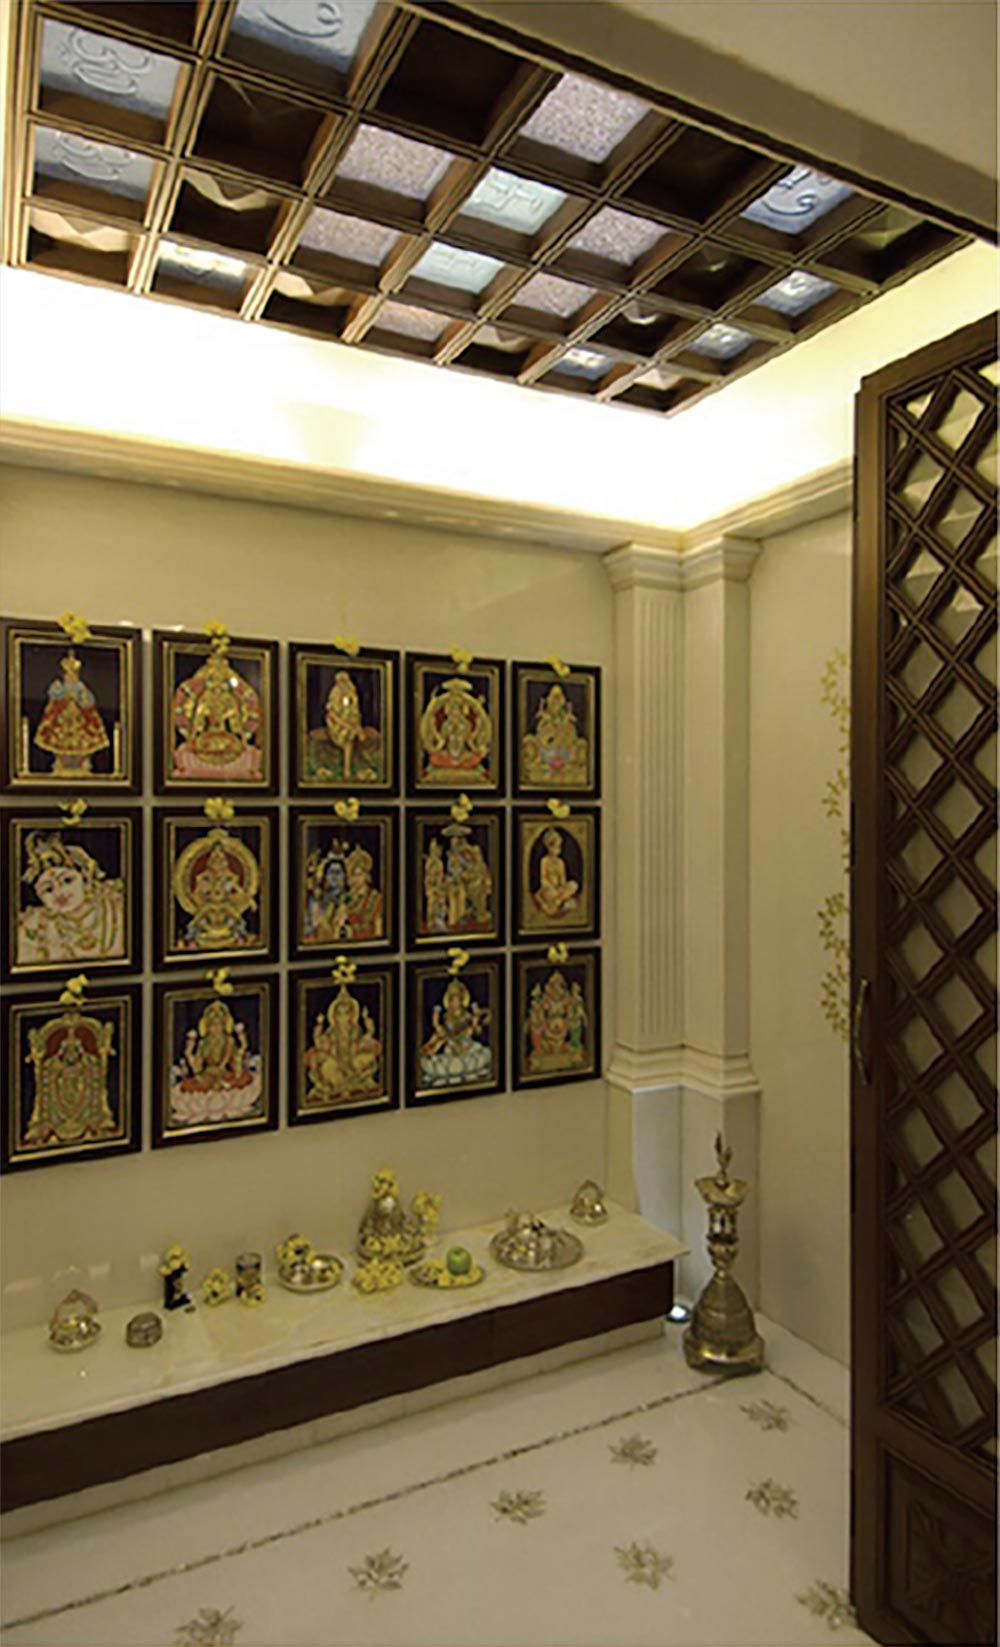 Pooja Room Door Designs Pooja Room: Pin By ASHA LATHA On HOME SWEET HOME PART 1